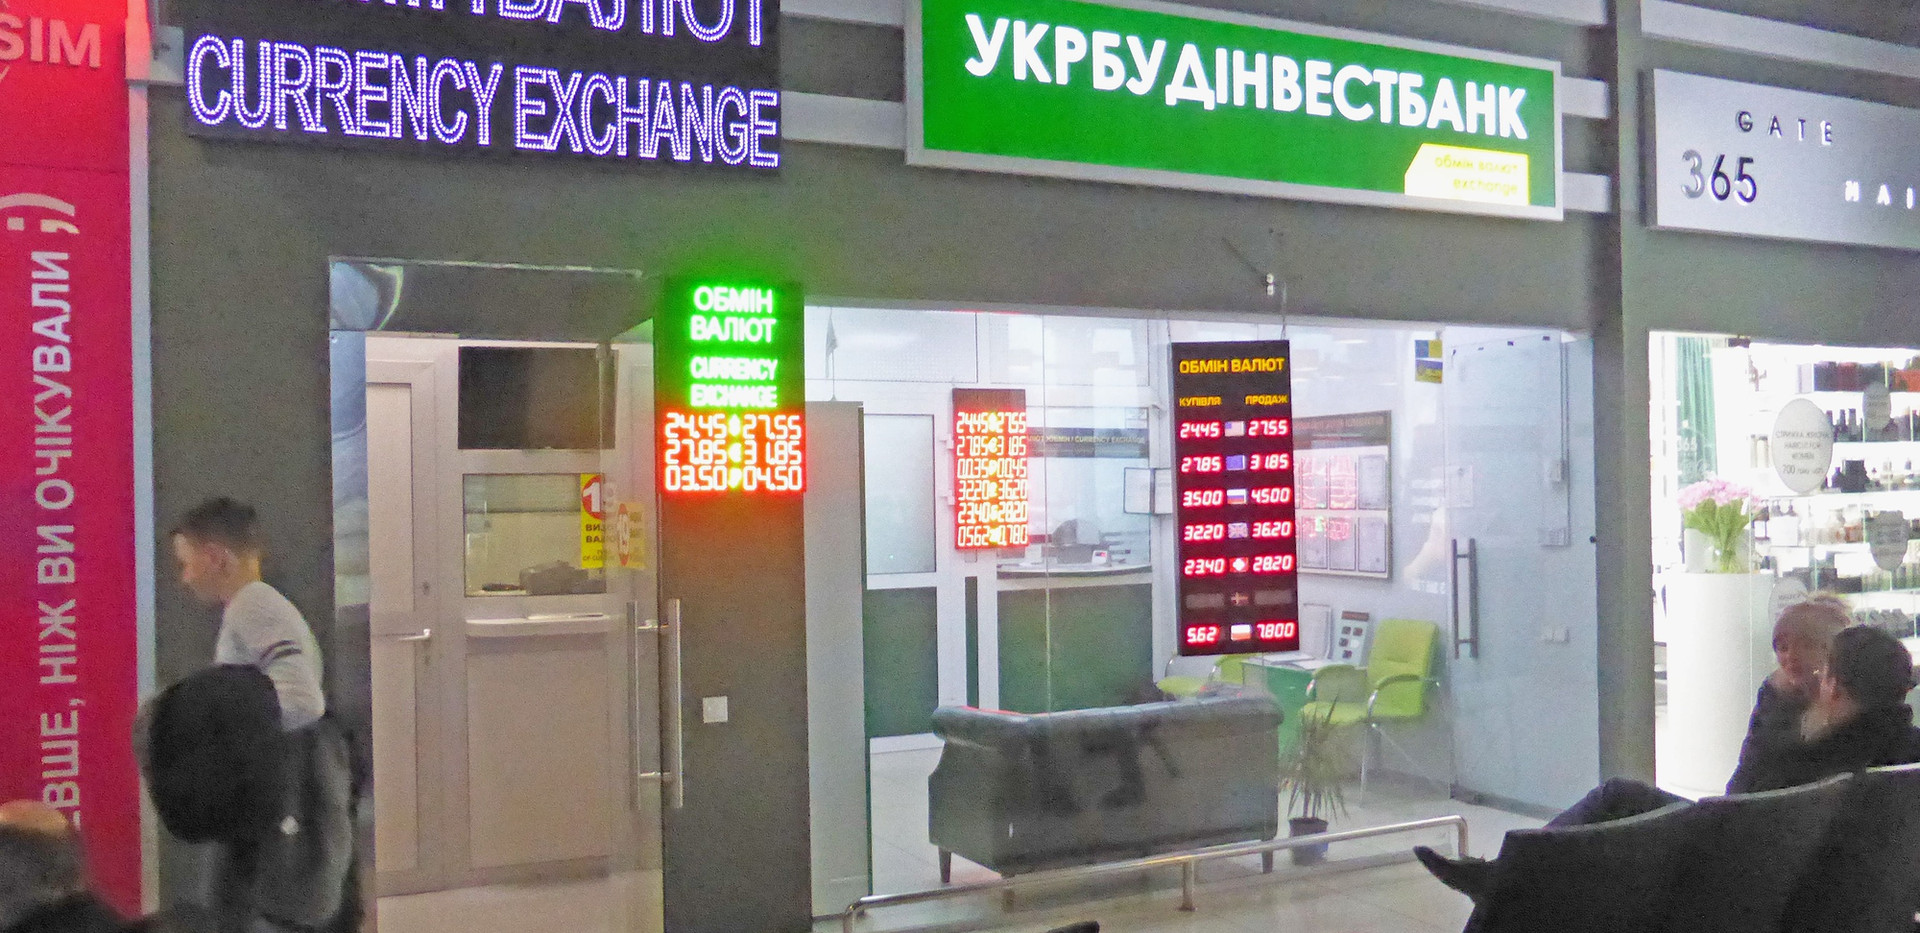 Zhuliany airport currency exchange